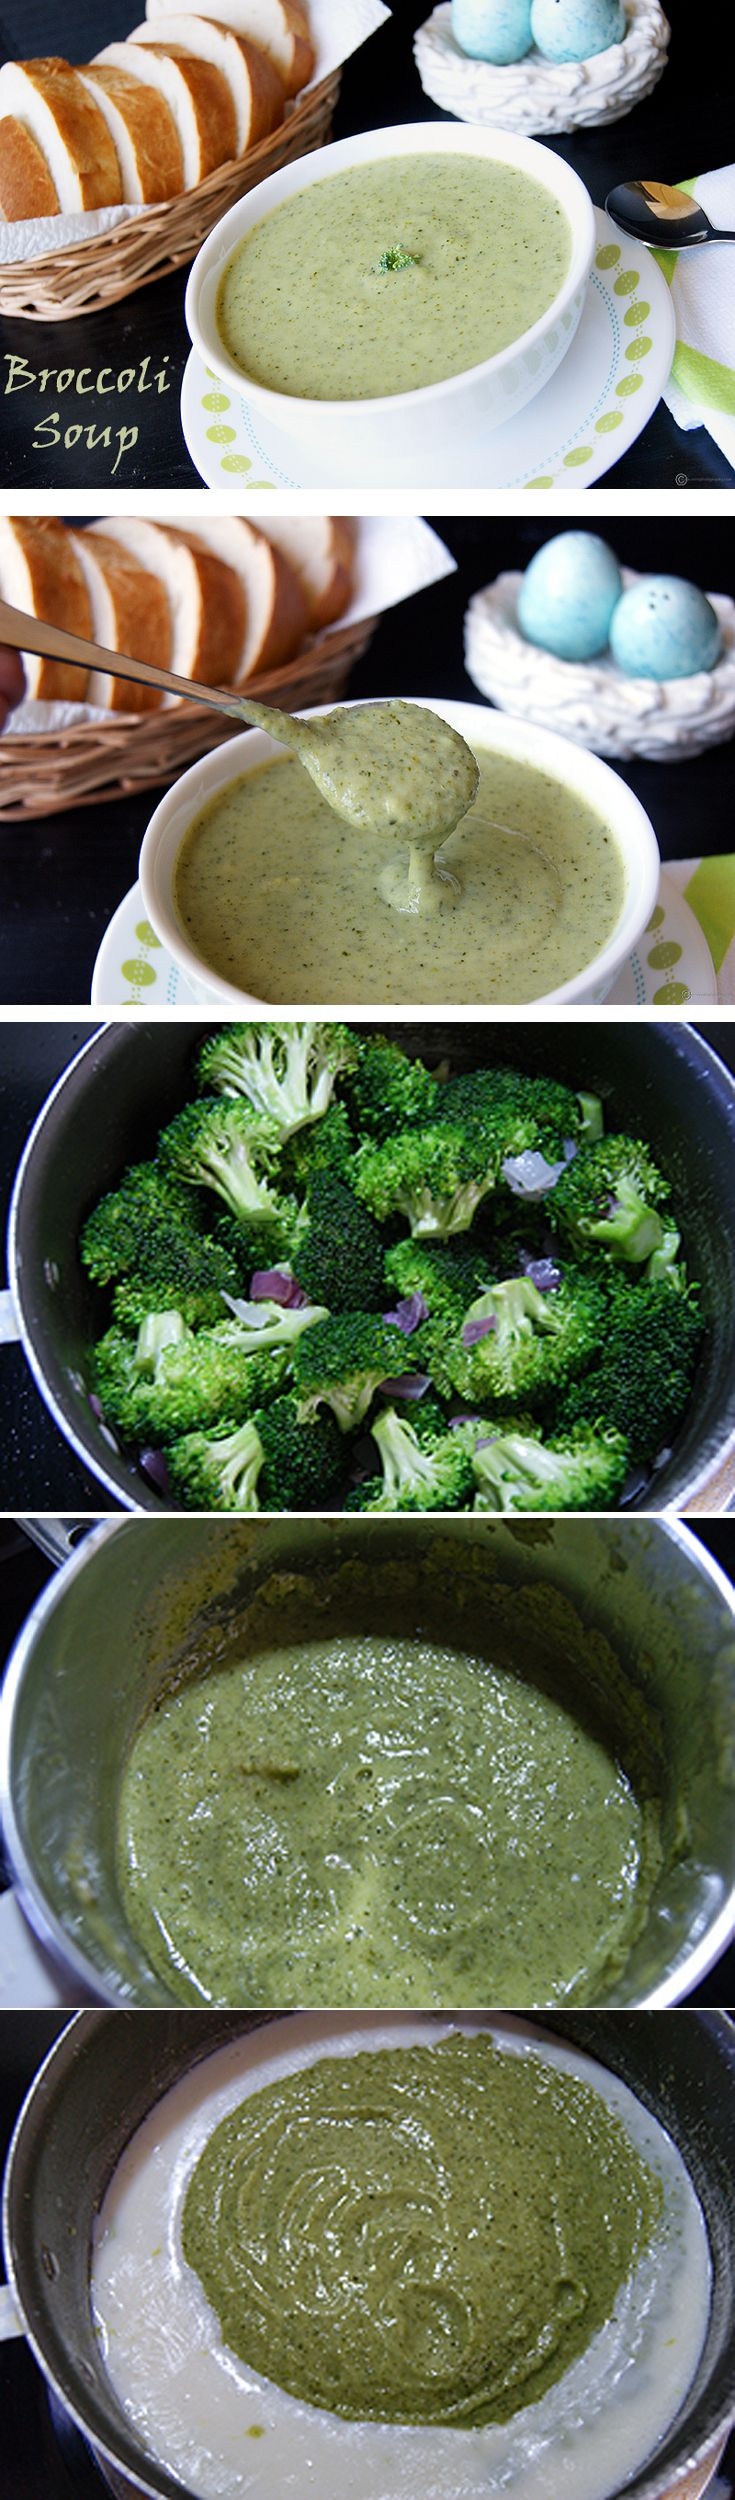 An easy and healthy broccoli soup to reap all the wonderful health benefits and flavor from the humble broccoli. This soup does not use any fresh cream but is naturally thick and creamy. Vegans can use vegan butter/ olive oil instead of regular butter and use a non-dairy milk.